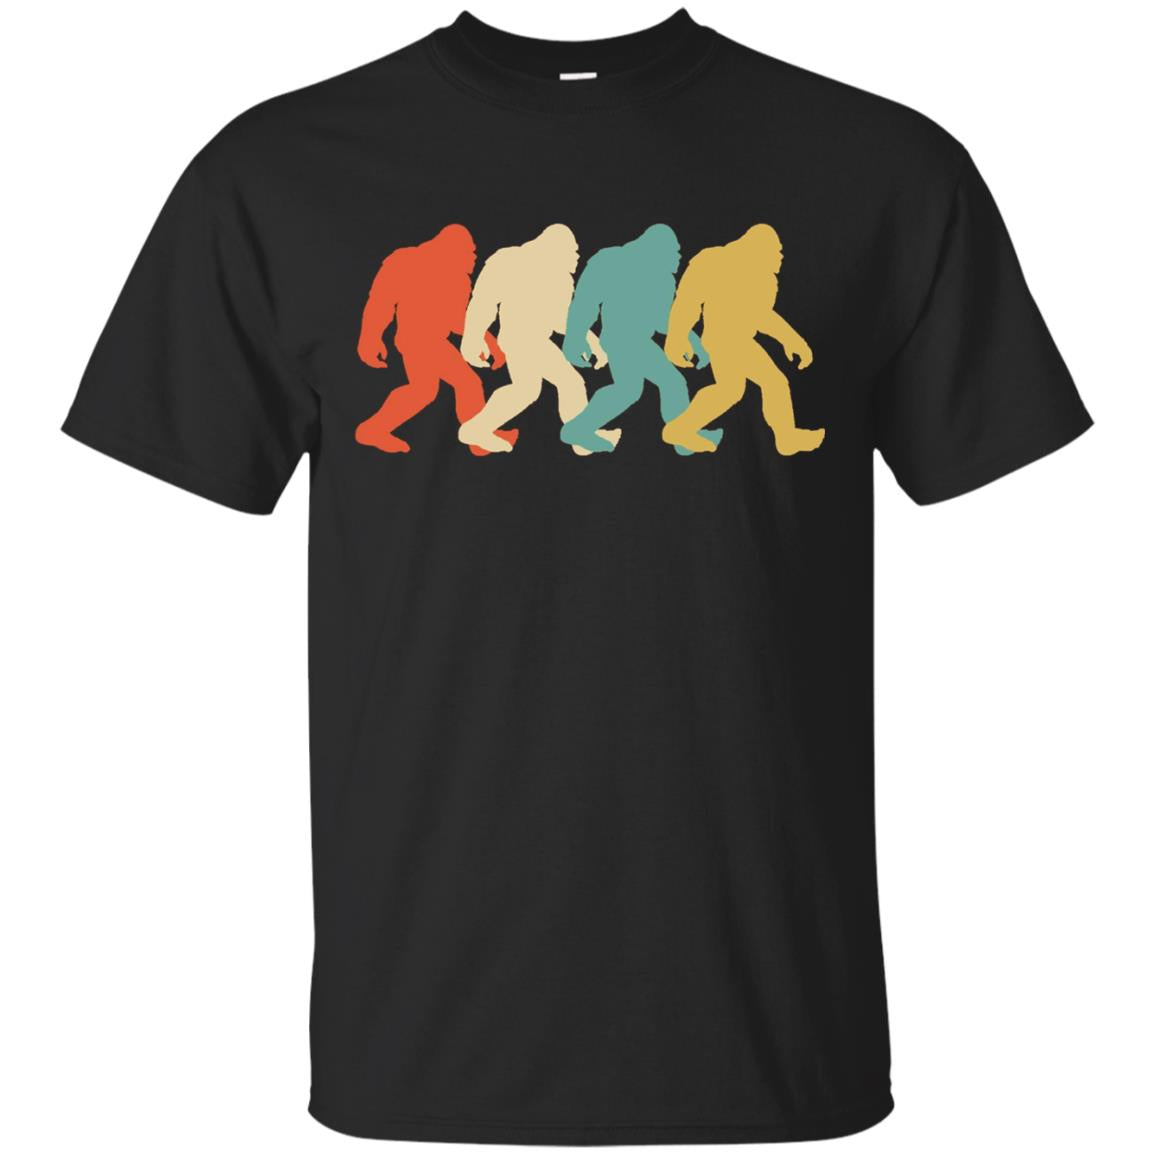 Bigfoot Silhouette Retro Pop Art Sasquatch Graphic T-Shirt